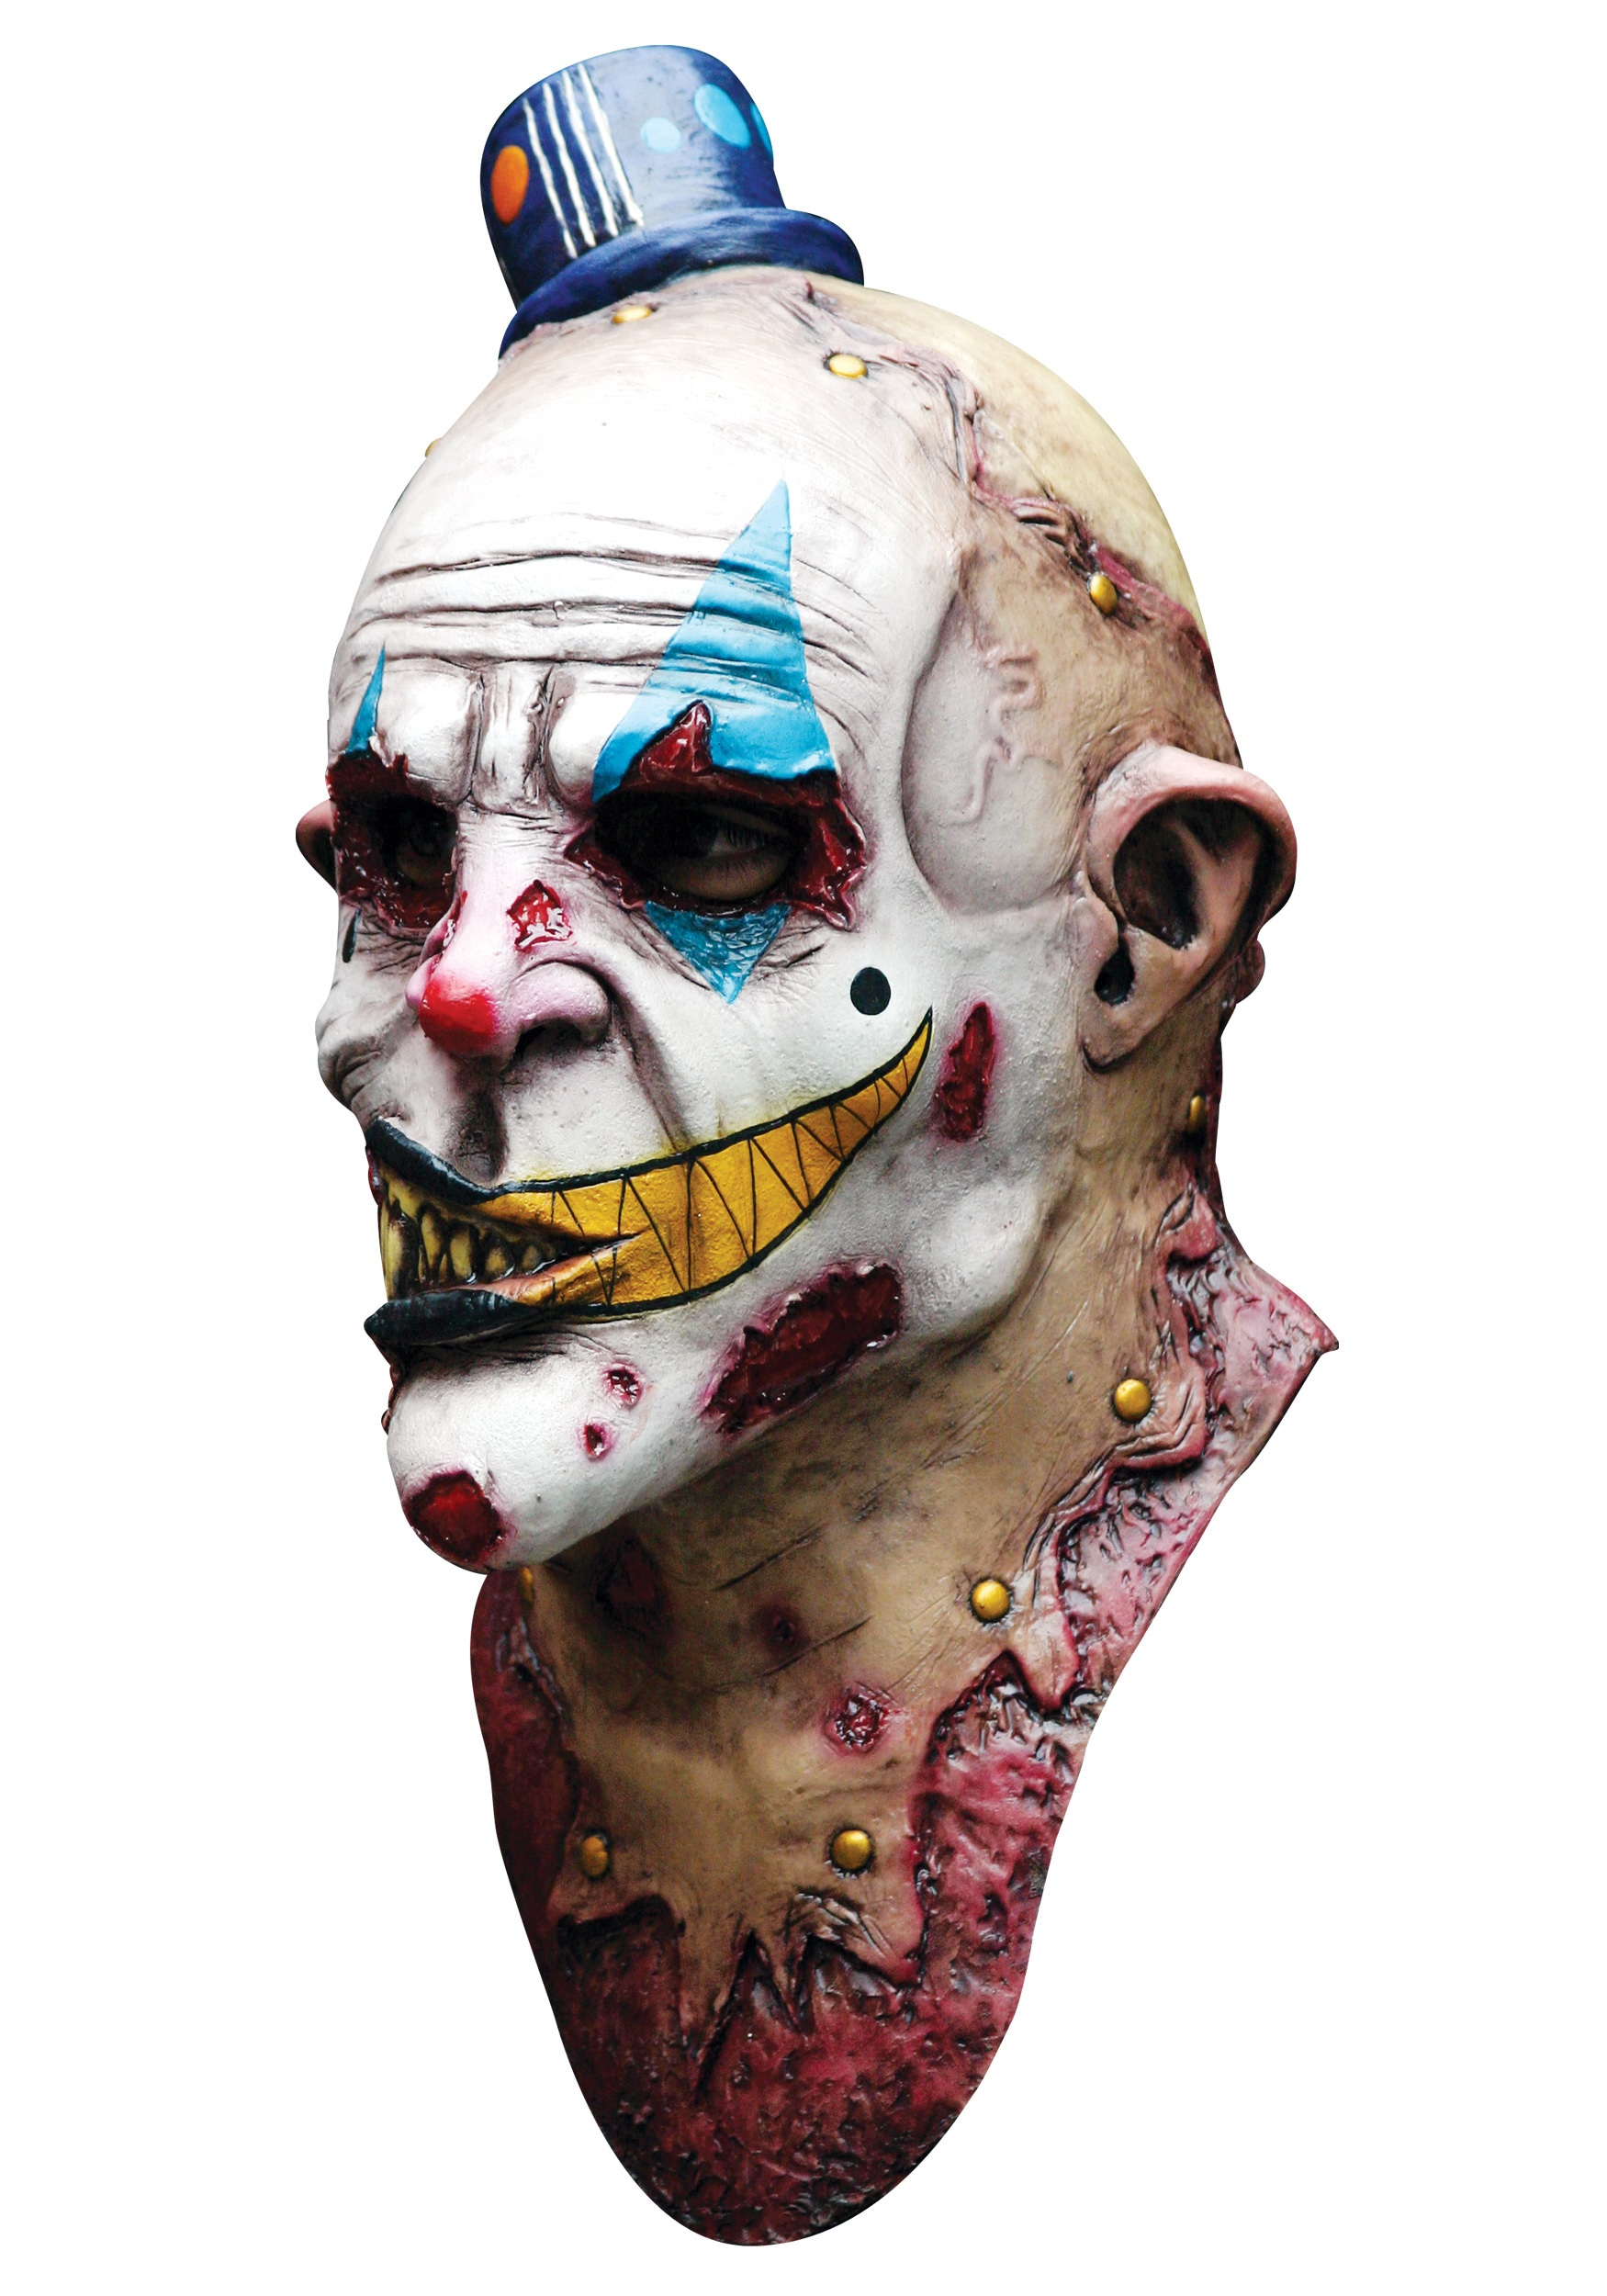 Scariest Halloween Mask - Most Popular Mask Design 2017